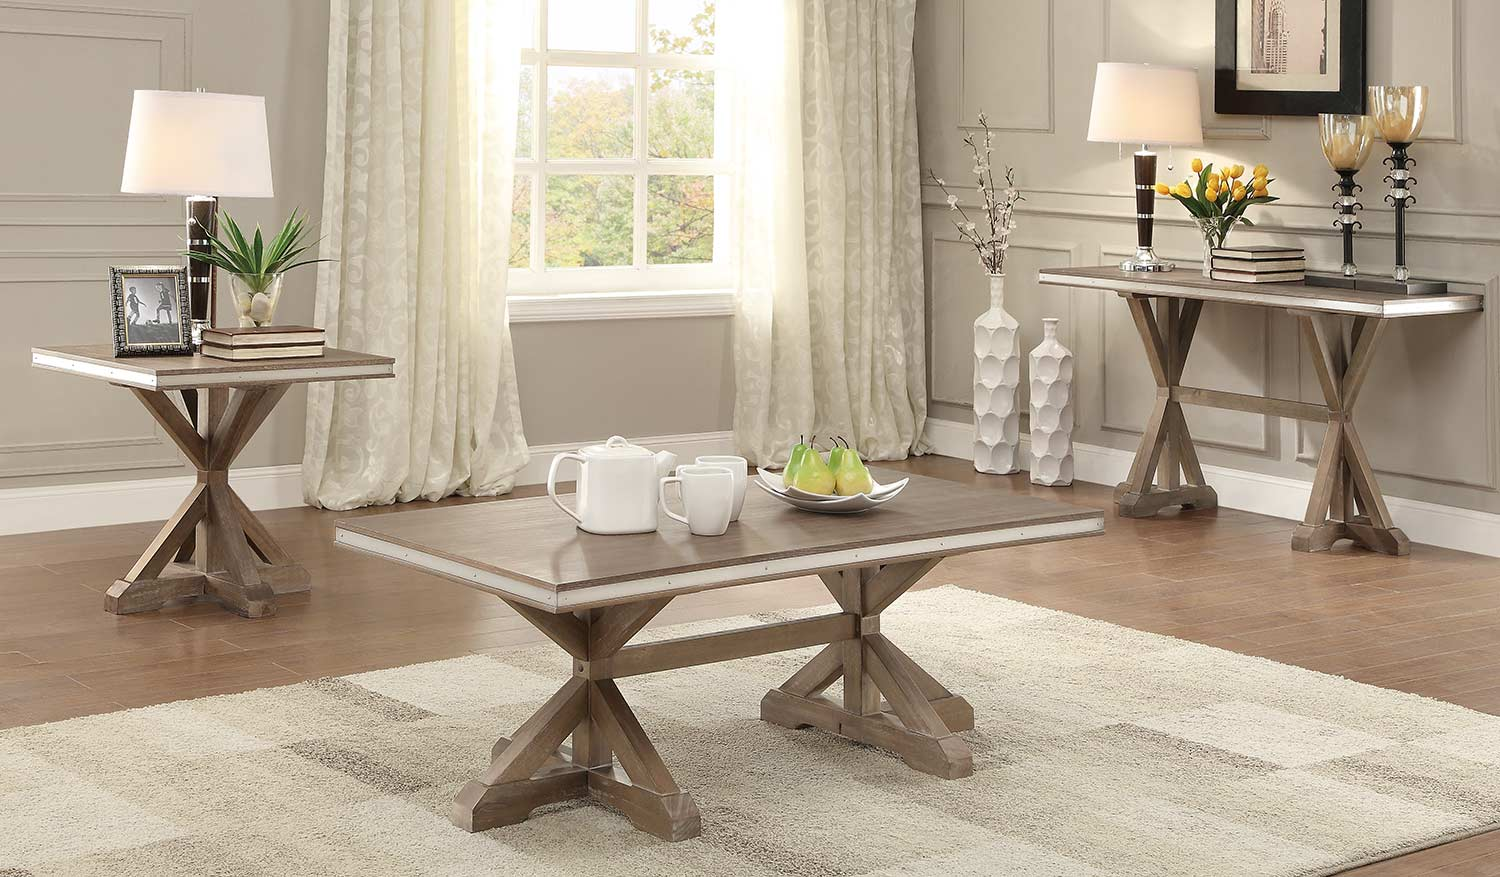 Homelegance Beaugrand Coffee Table Set Light Brown With Stainless Steel Apron Banding